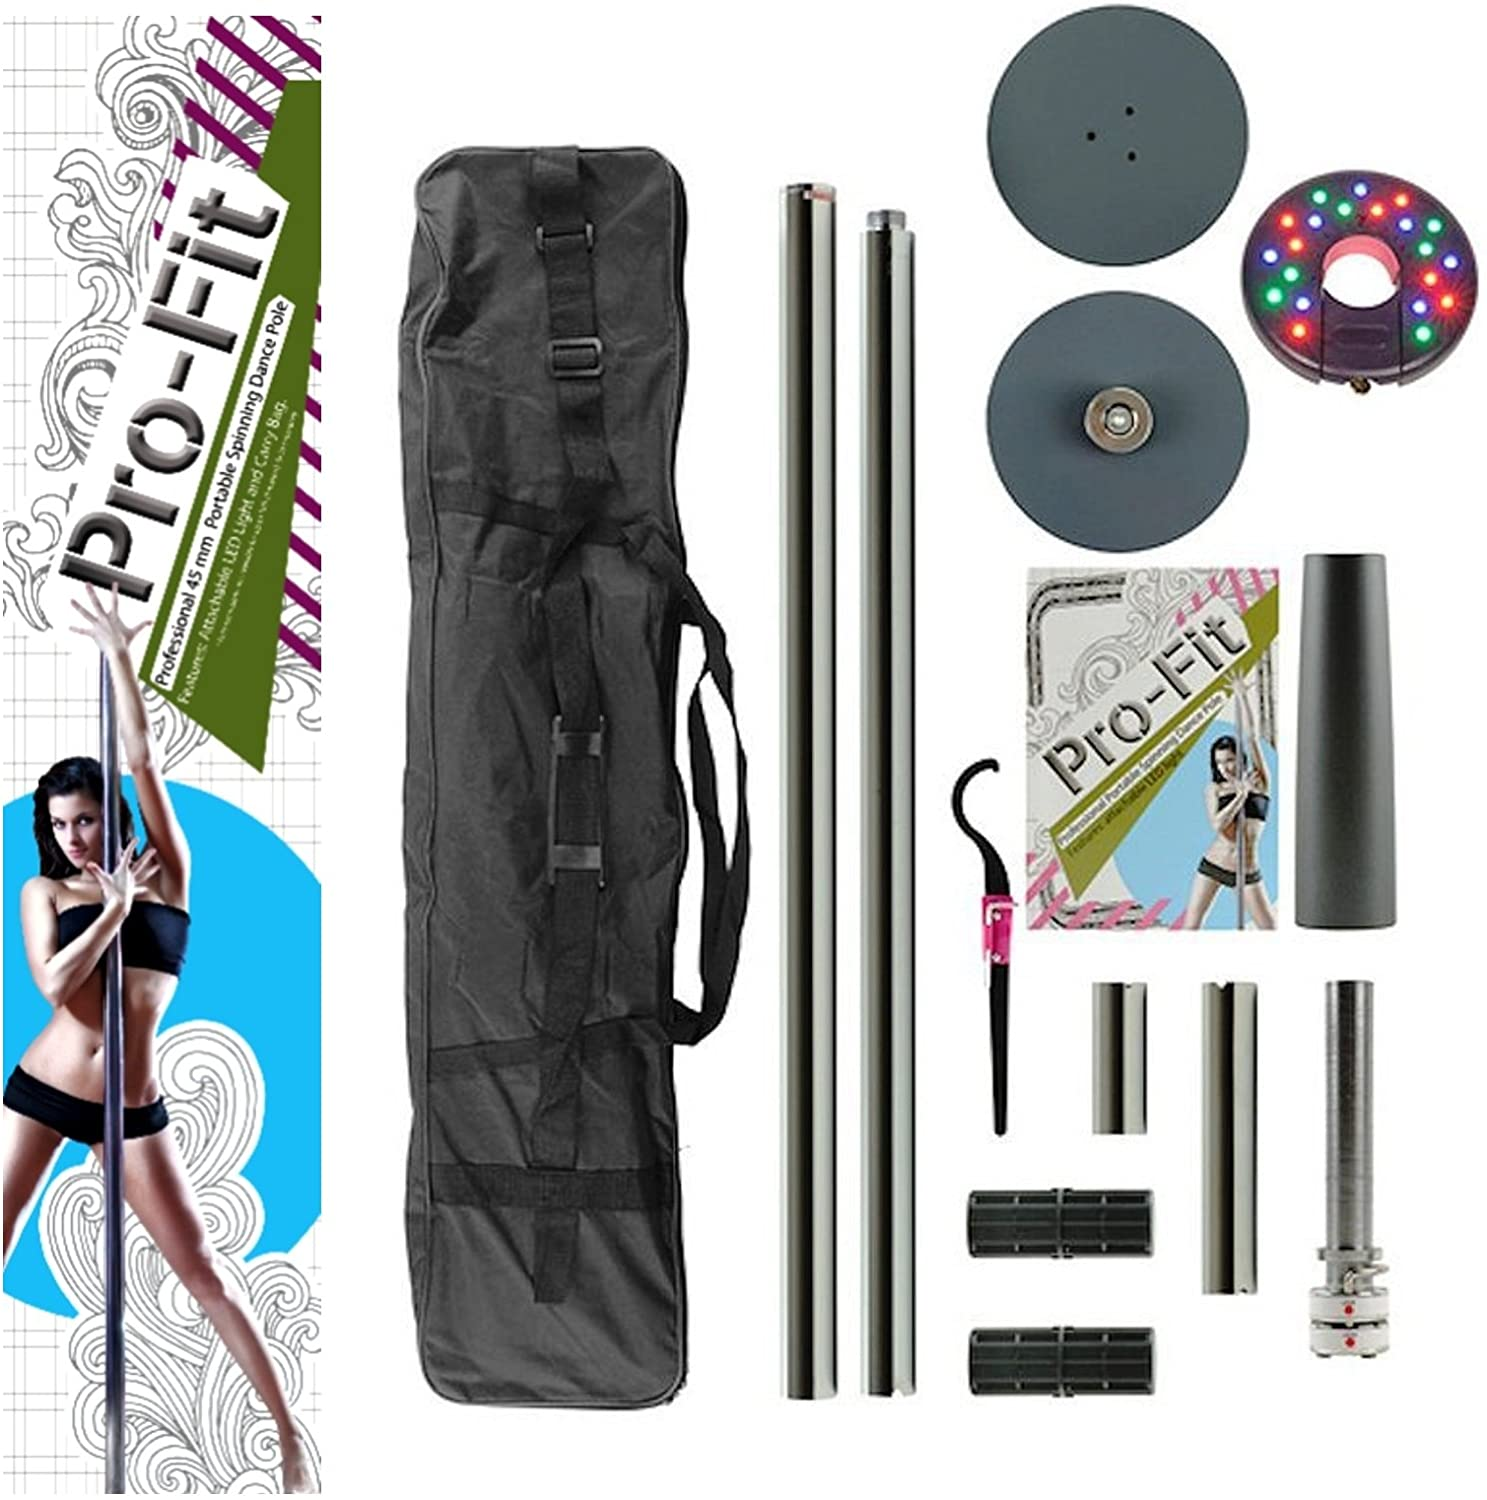 PRO FIT Professional Portable Spinning Dance Pole with Attachable LED Dance Light and Carry Bag